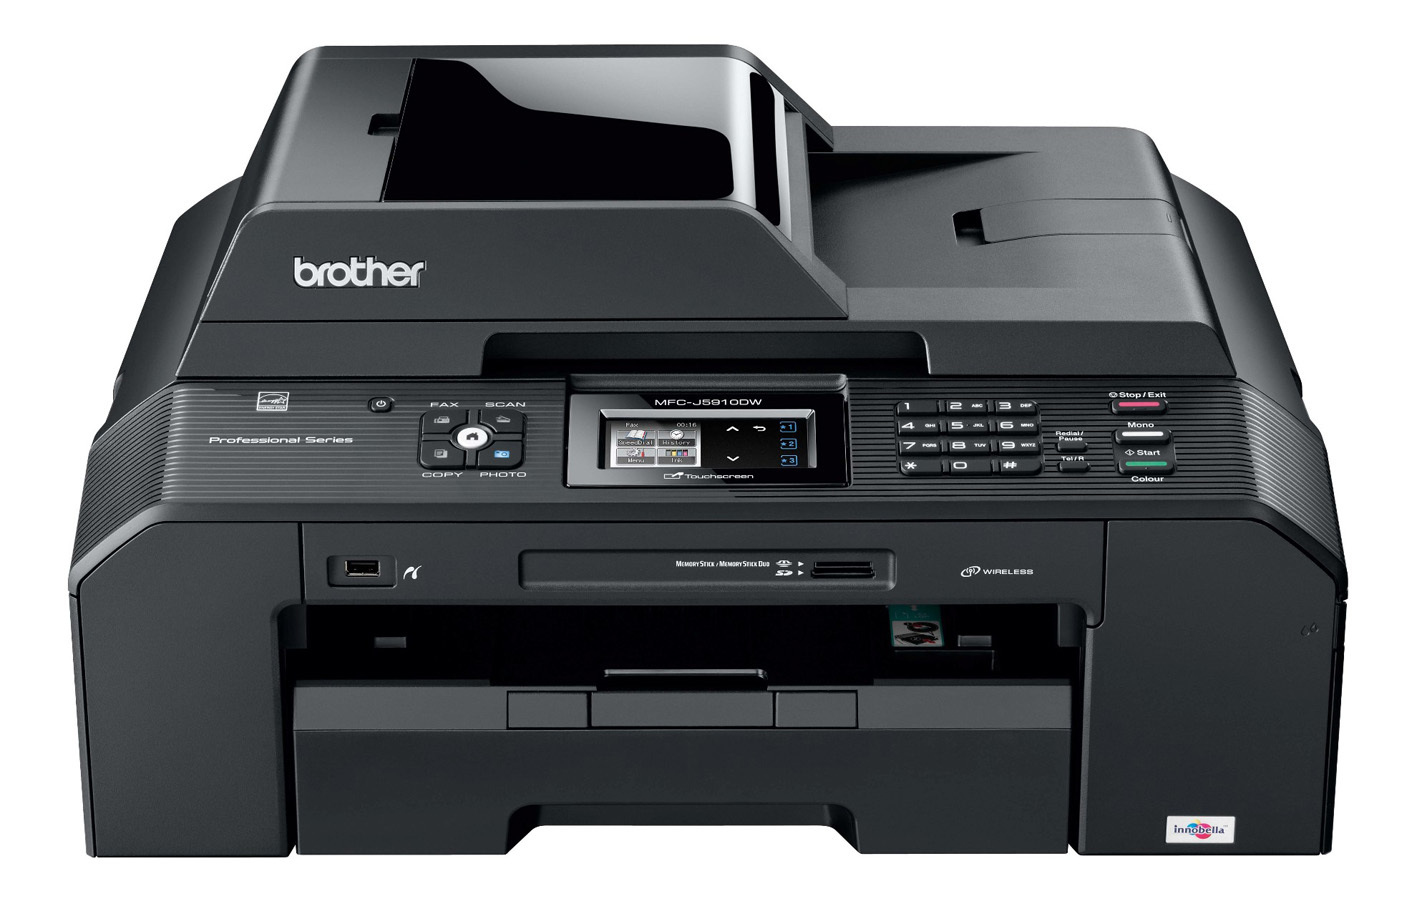 Brother MFC-J5910DW Multifuntional Printer - Refurbished